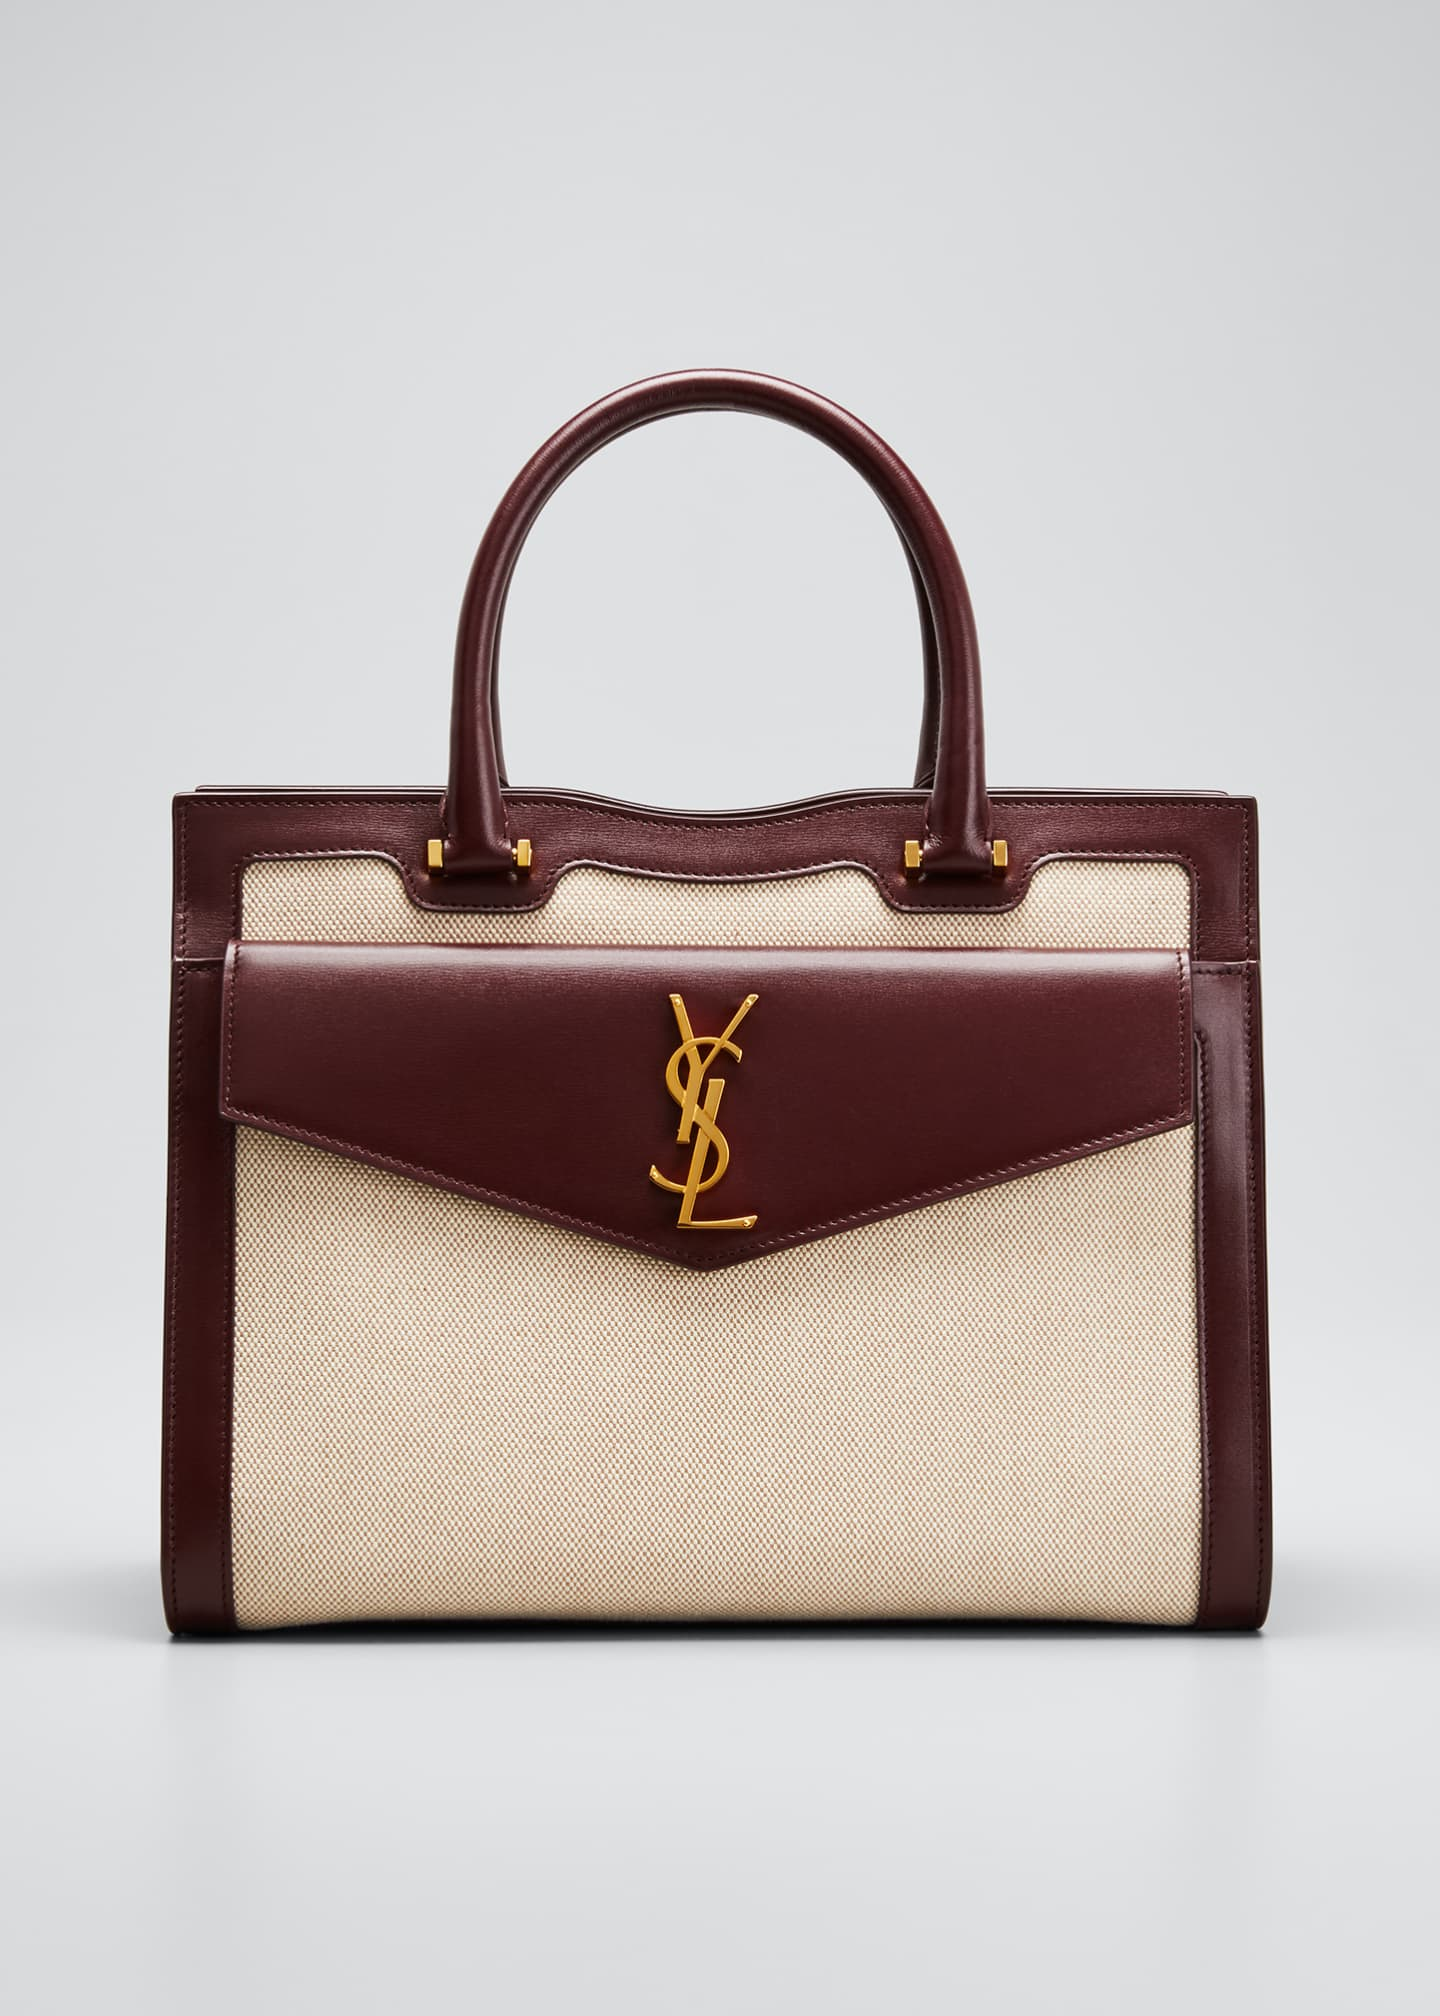 Saint Laurent Uptown Medium YSL Canvas Satchel Bag